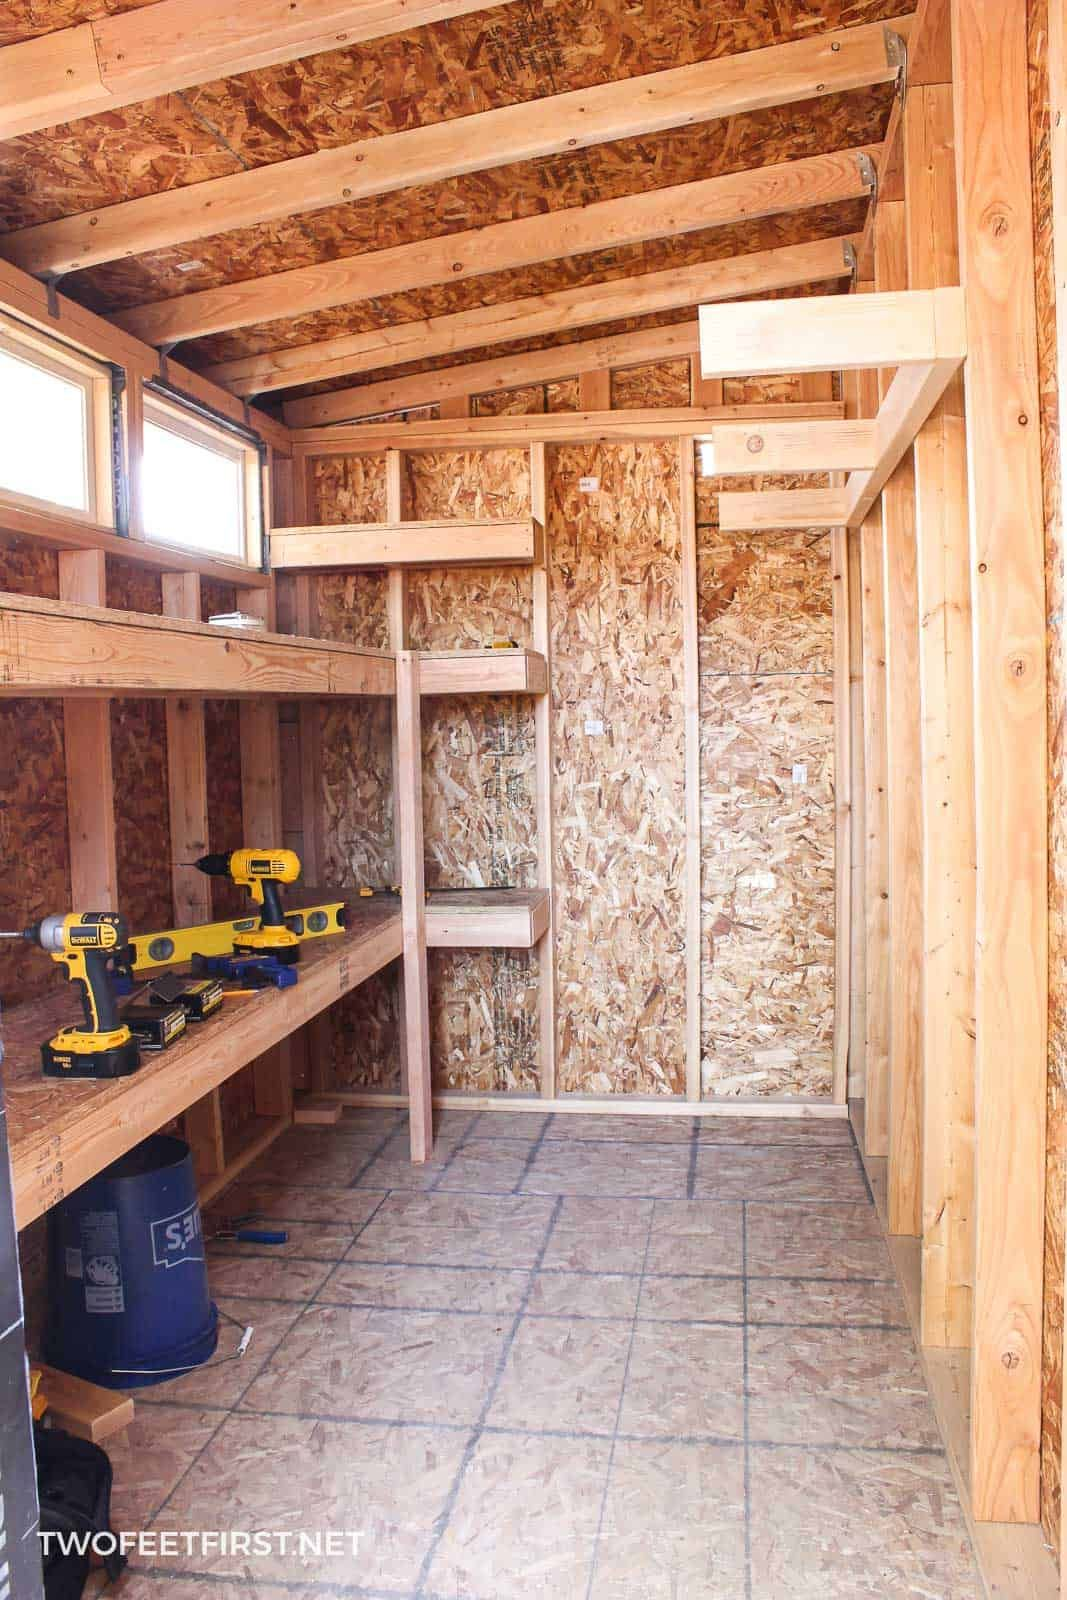 How To Build Storage Shelves In A Shed Or Garage | Garage | Backyard